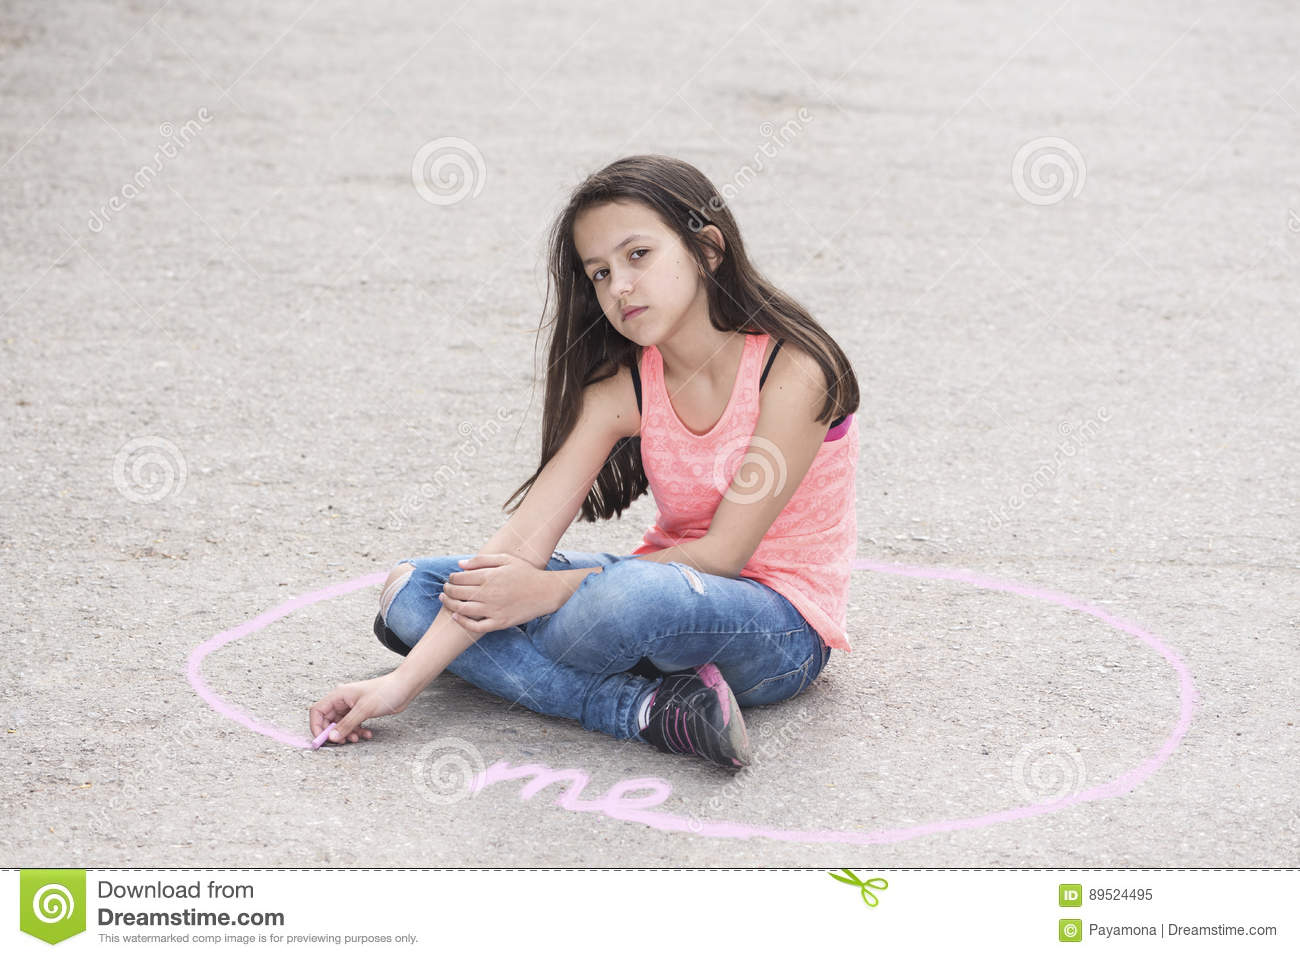 Personal Space And Preteen Girl In A Circle Stock Image